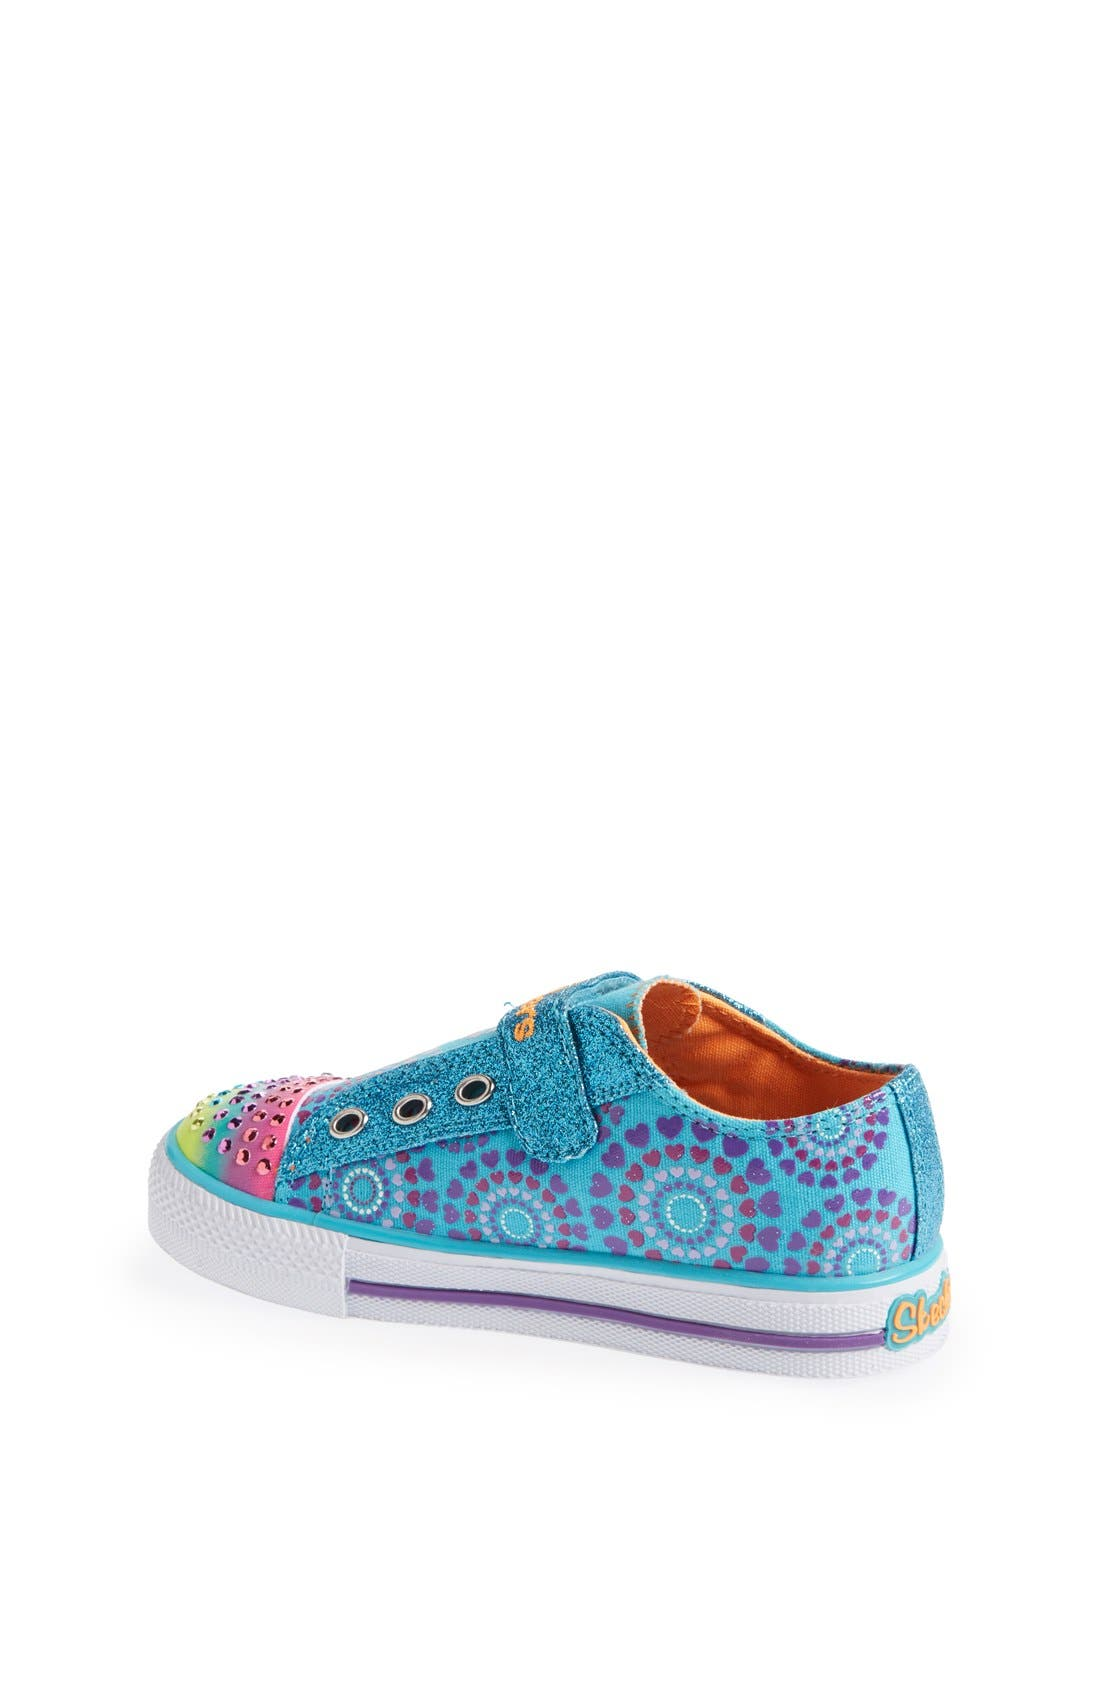 Alternate Image 2  - SKECHERS 'Shuffles - Love Burst' Sneaker (Toddler)